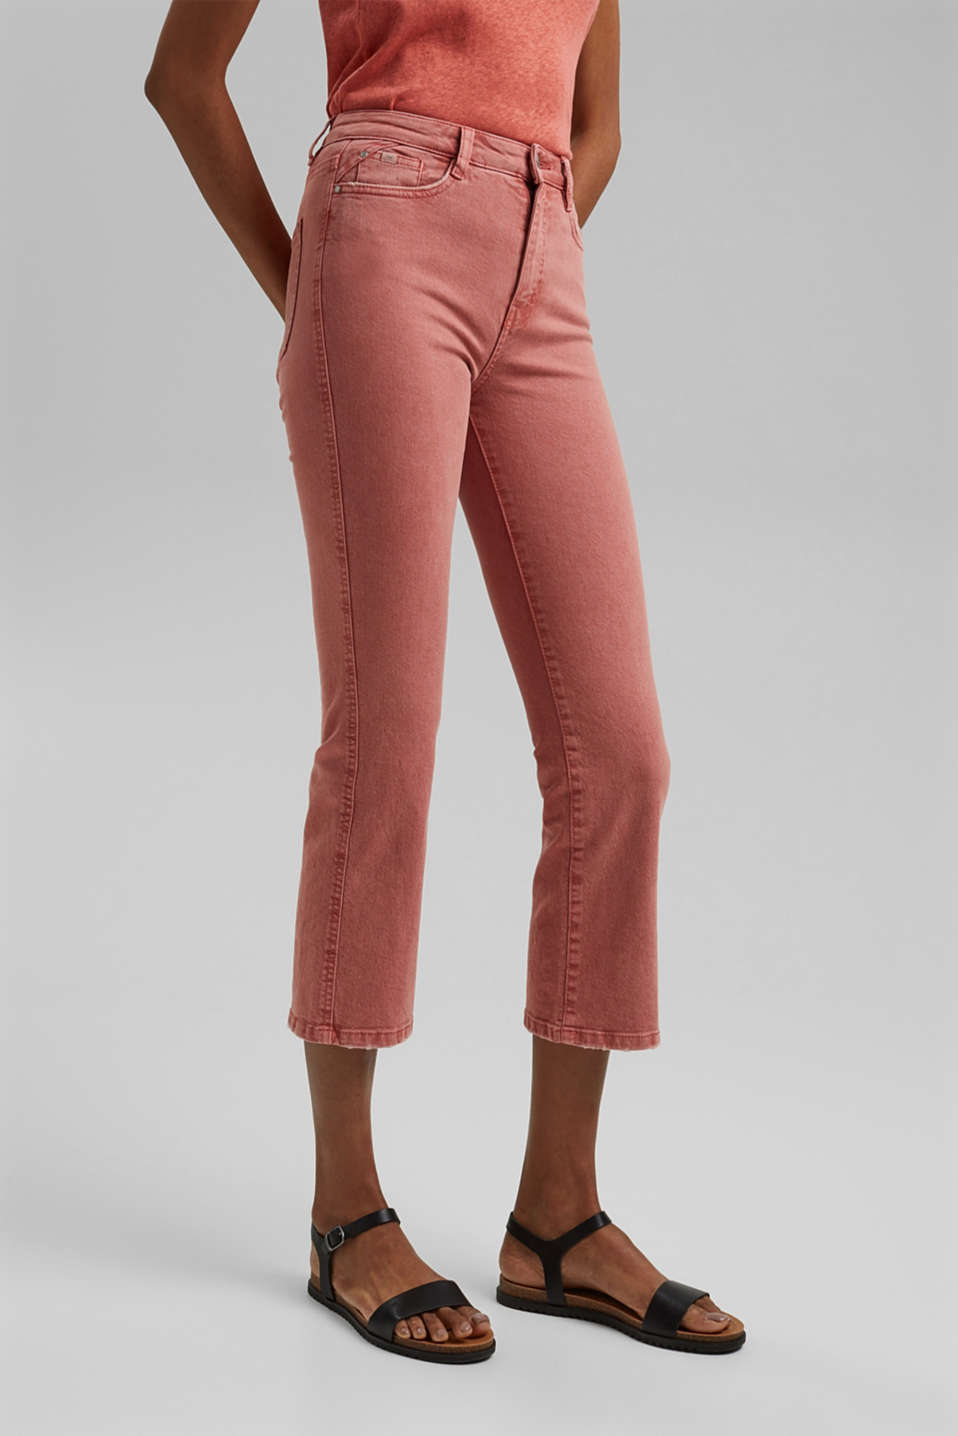 edc - Pantalon stretch évasé